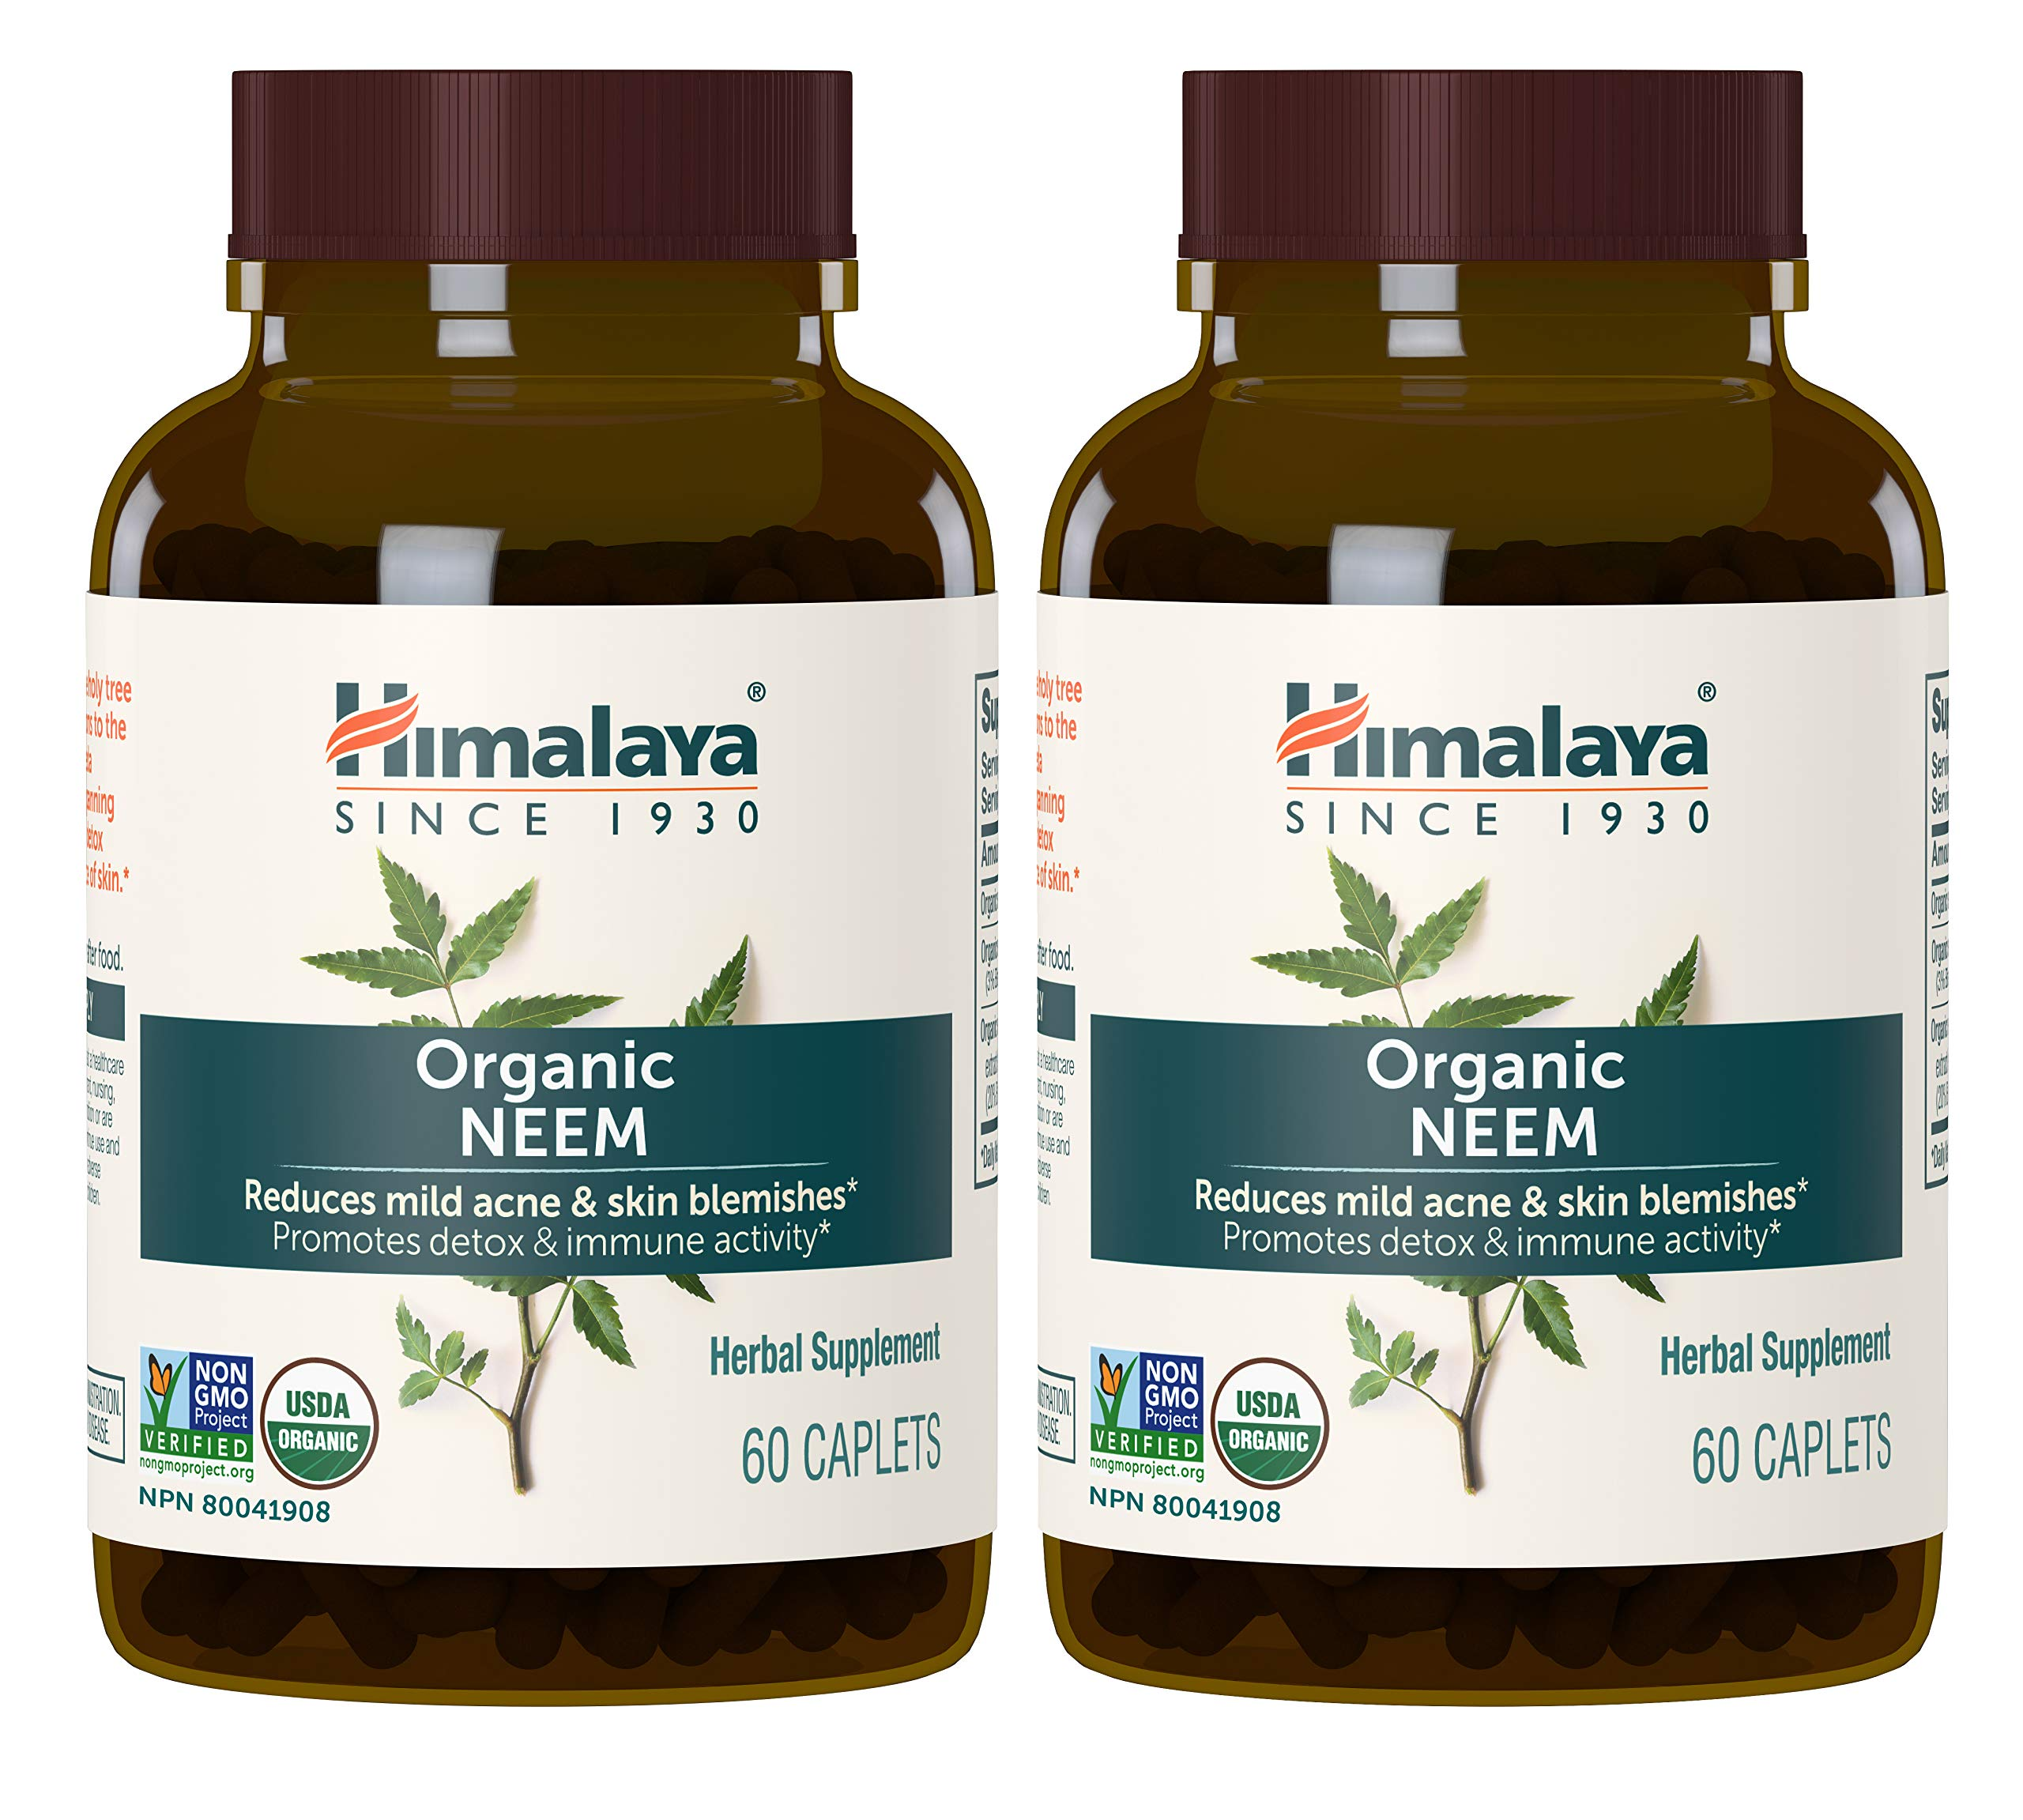 Himalaya Organic Neem, Mild Acne Relief for Clear, Smooth & Radiant Looking Skin, 600 mg, 60 Caplets, 4 Month Supply, 2 Pack